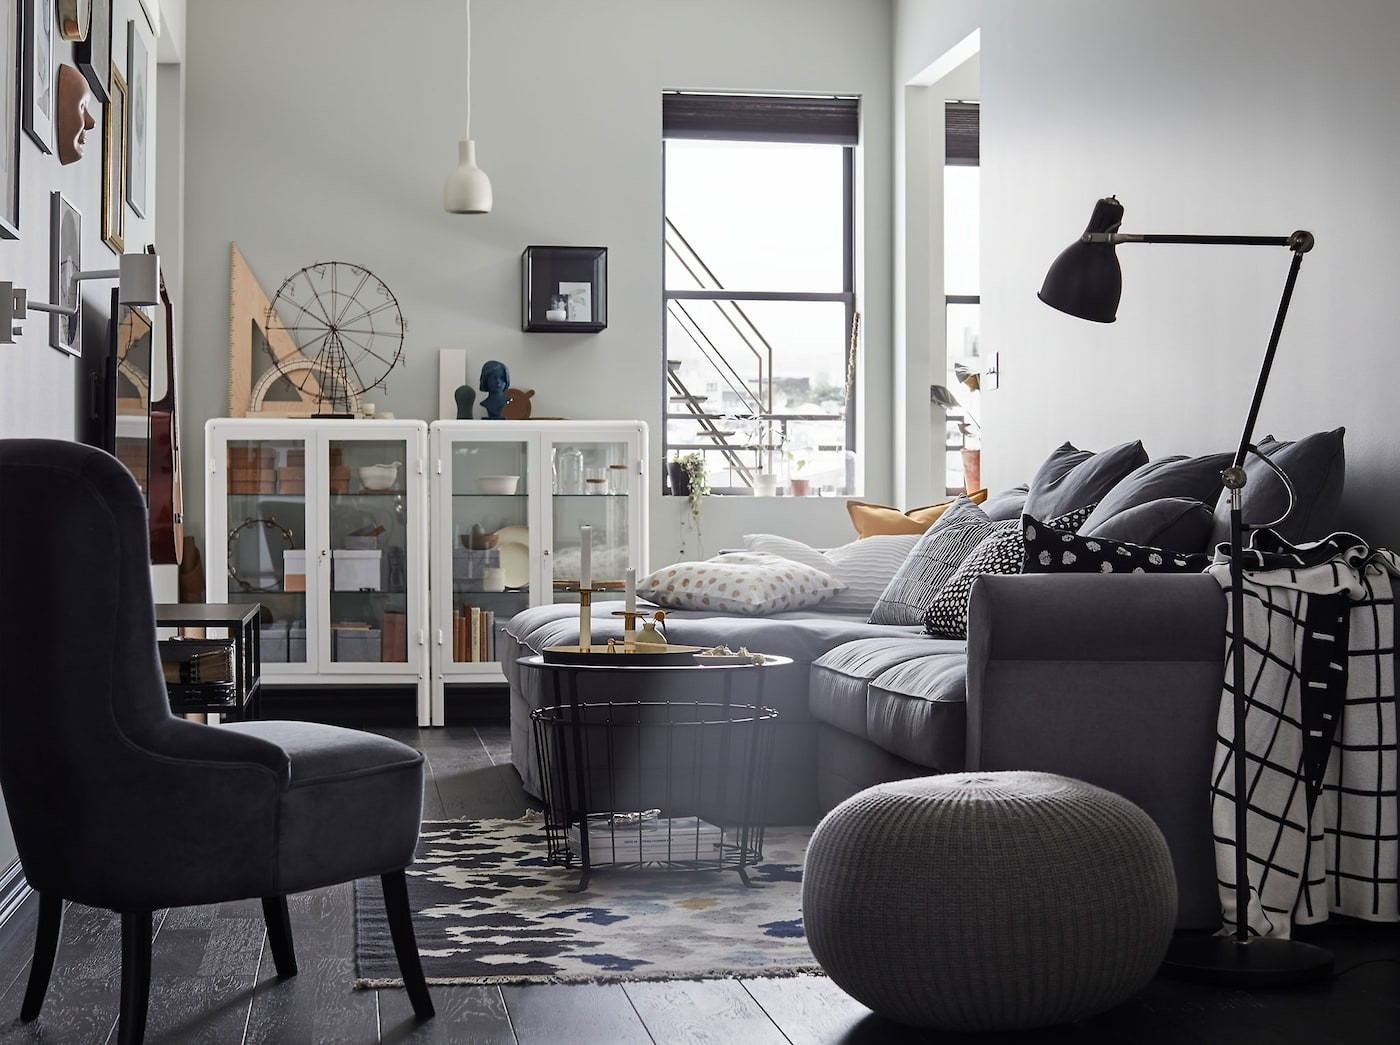 Best ideas about Ikea Living Room Chairs . Save or Pin Living Room Furniture & Ideas Now.